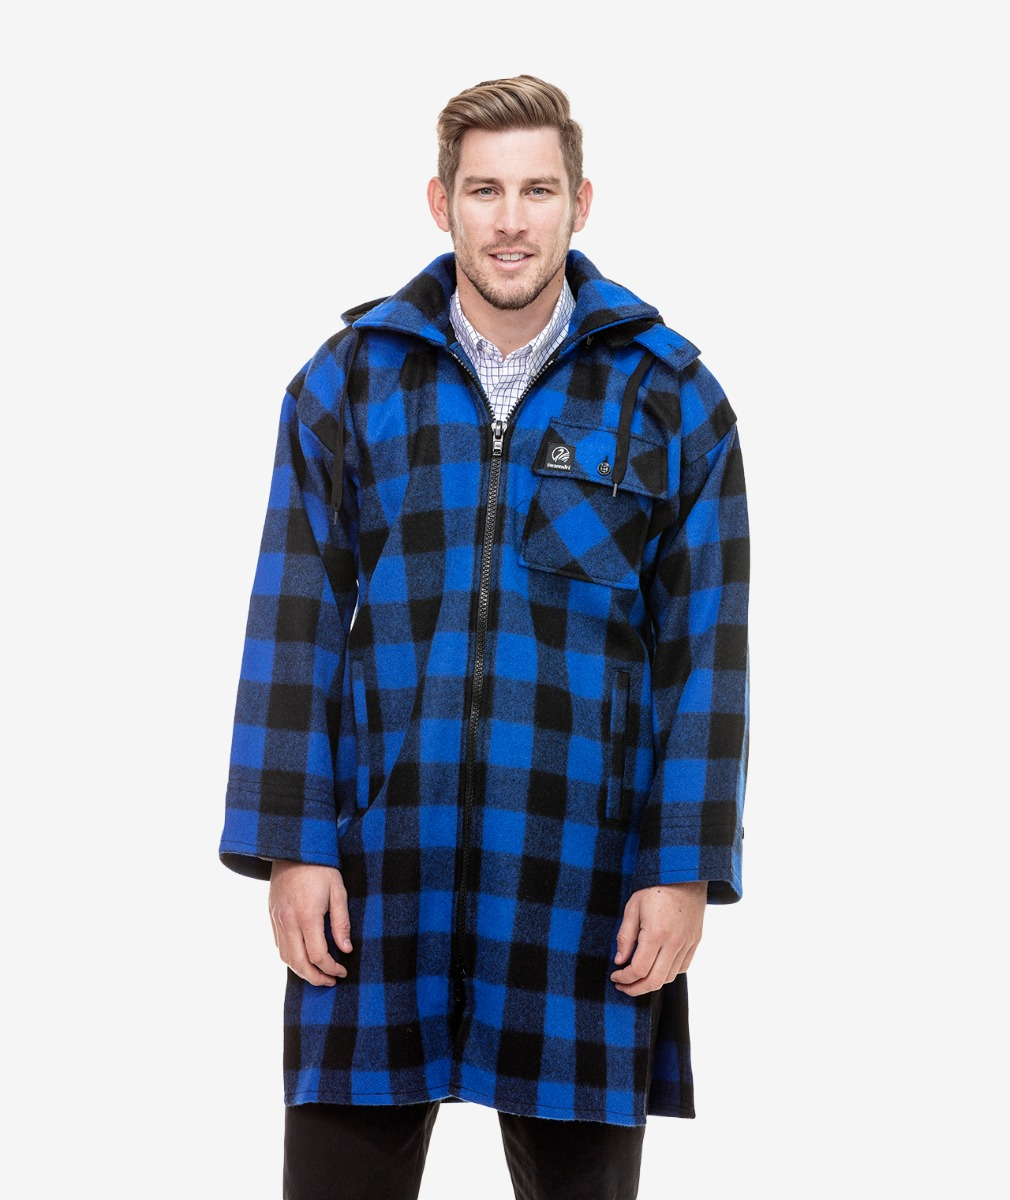 Swanndri Men's Mosgiel Wool Bushshirt with Zip-up in Blue/Black Check